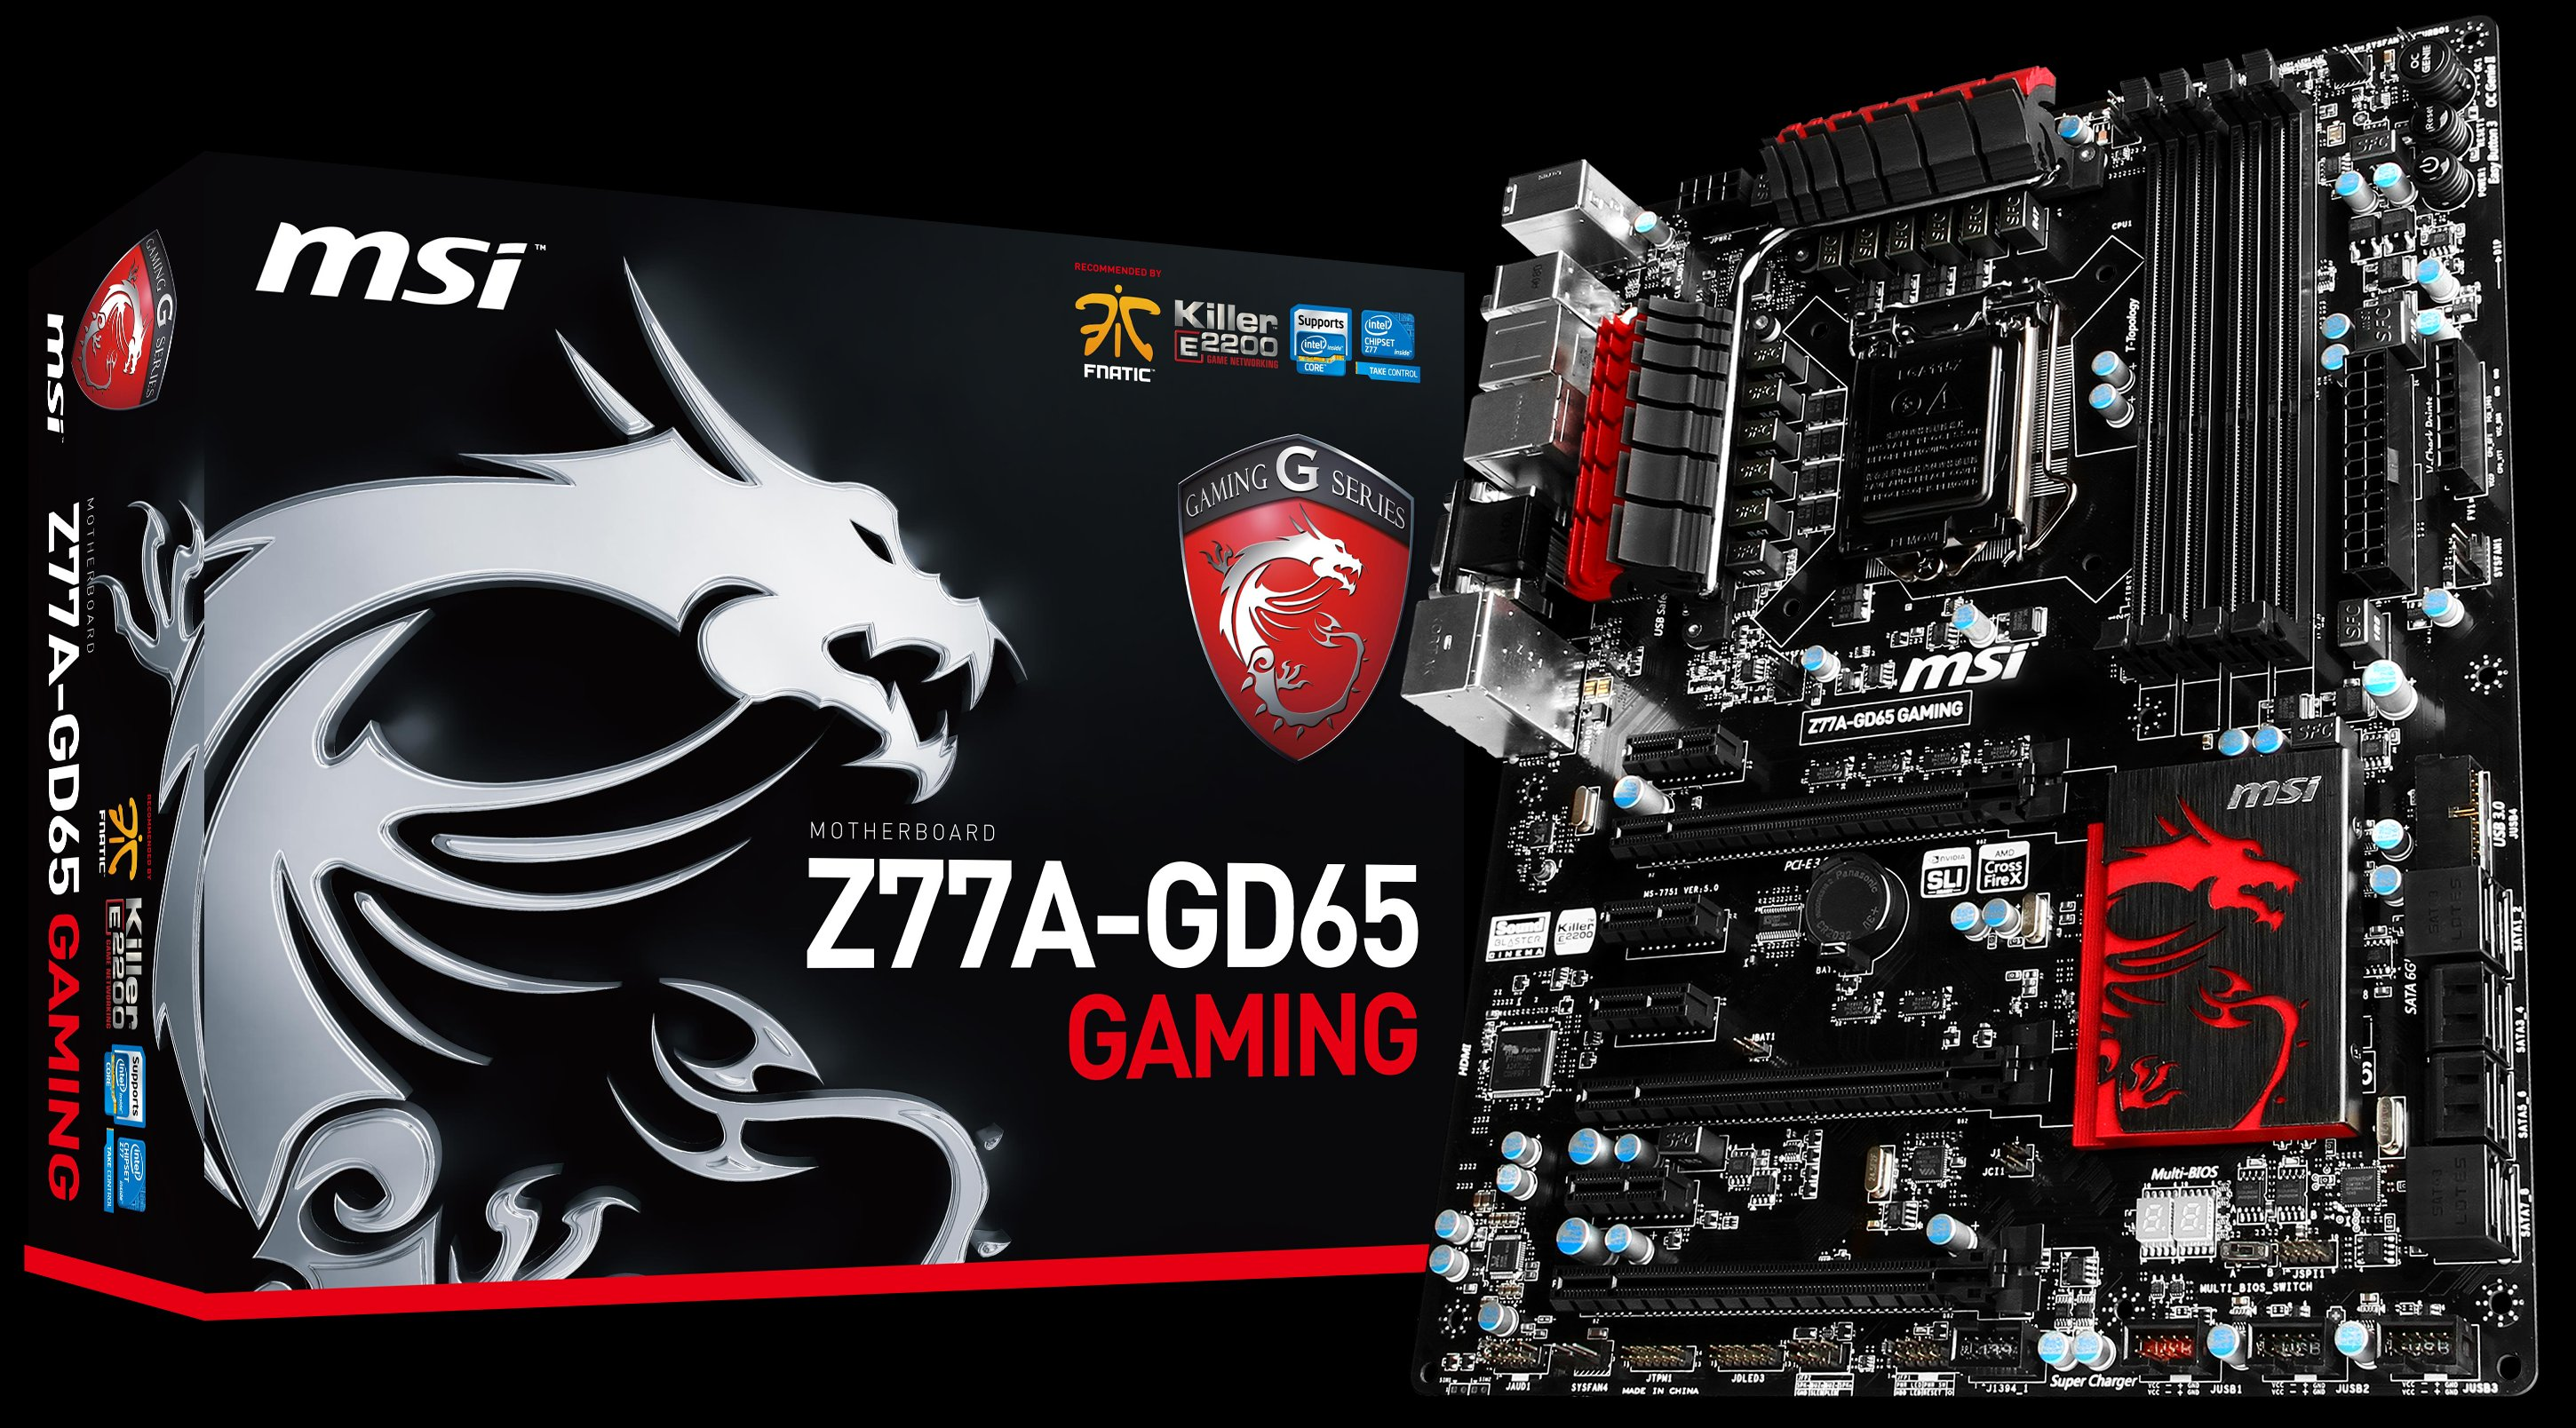 MSI GAMING LAPTOP Game Videogame Computer 2 Wallpaper Background 2900x1608